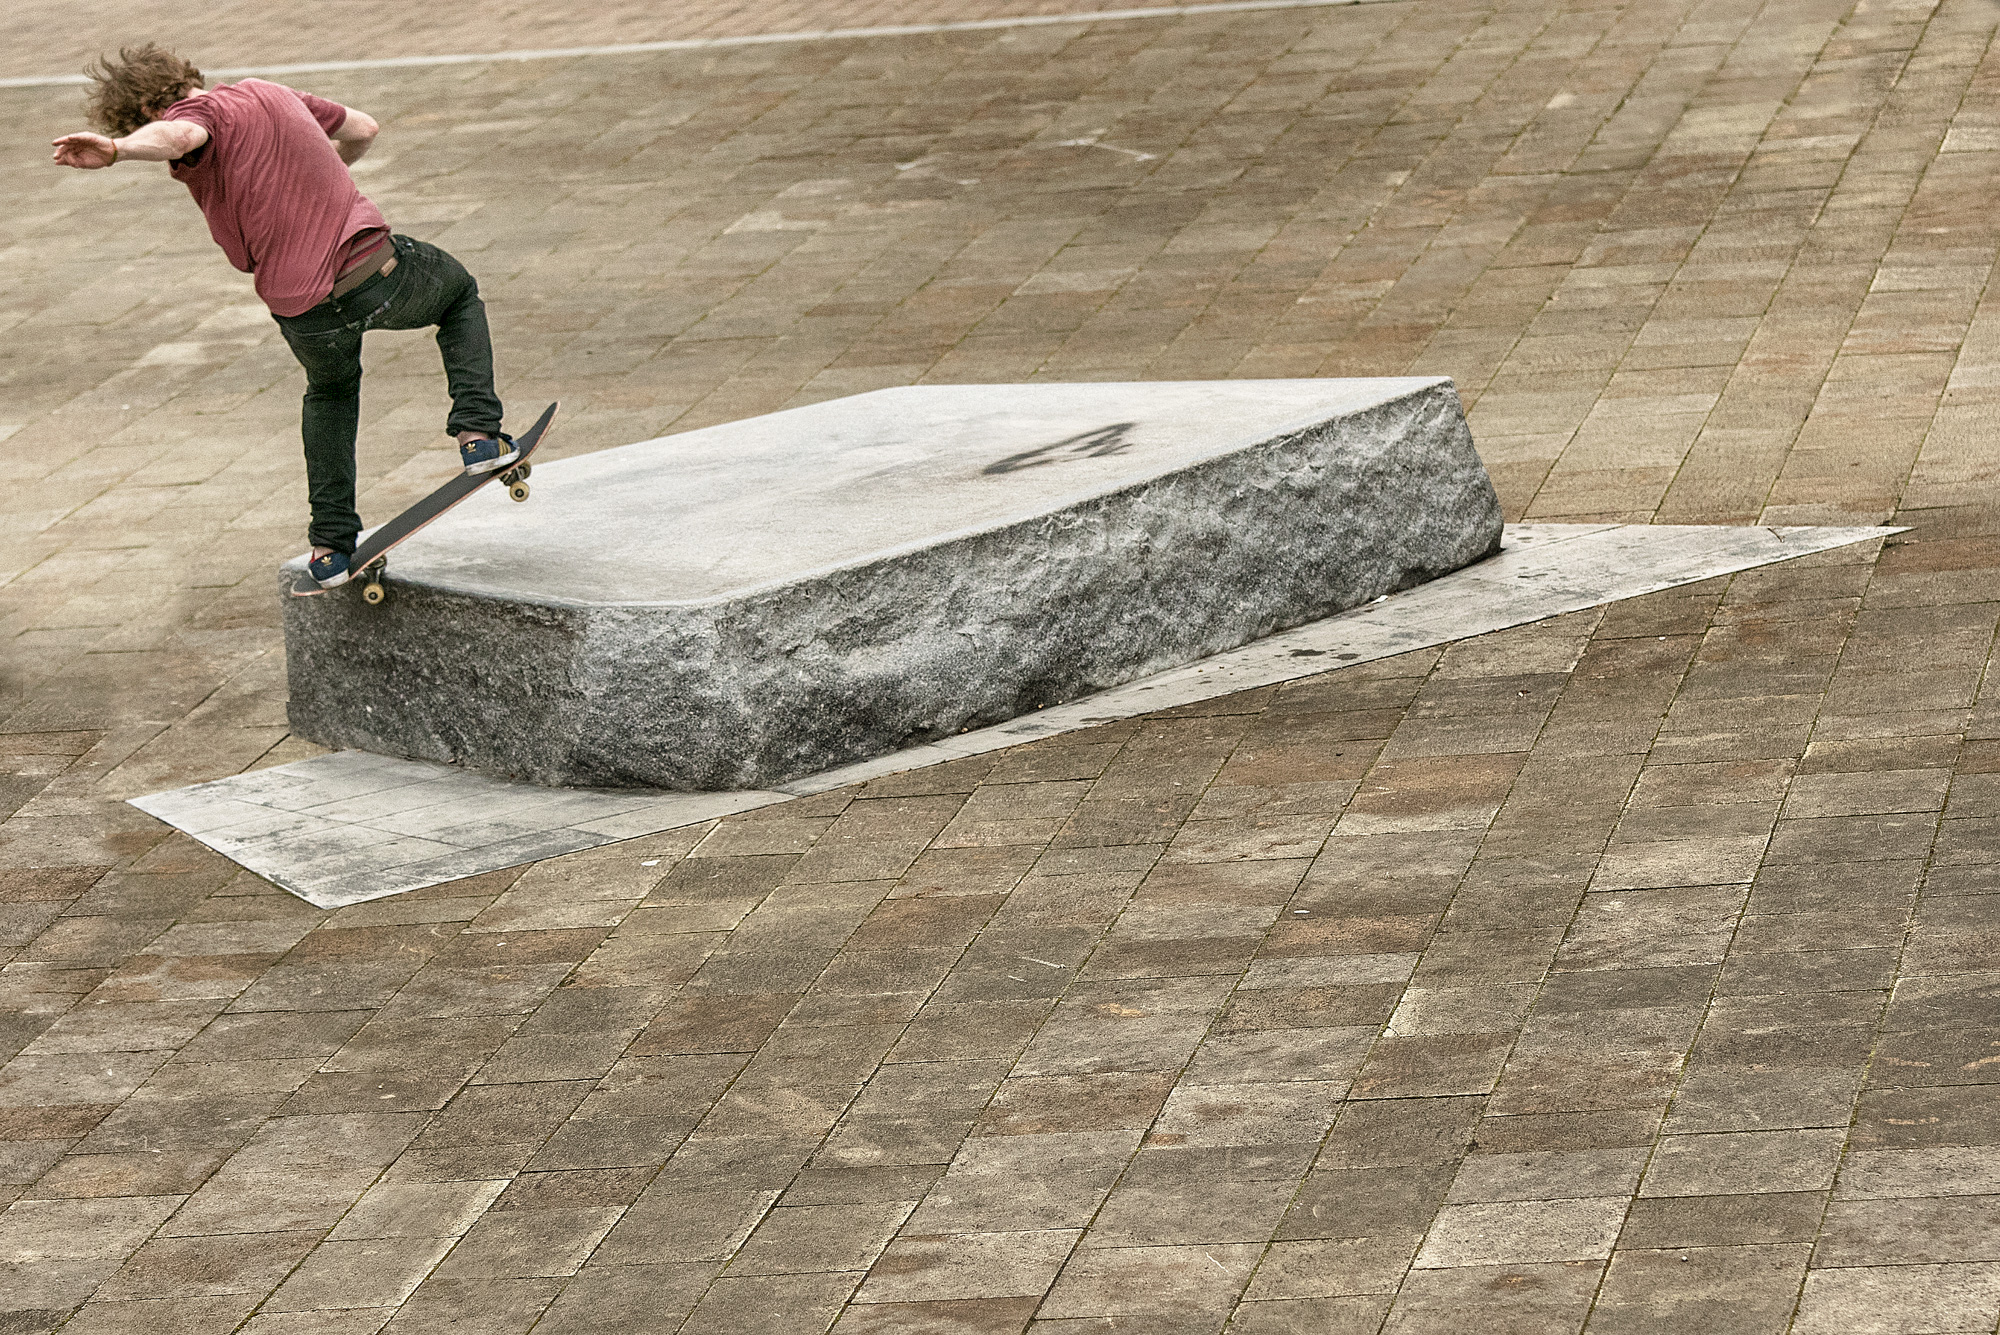 Silas Baxter-Neal, frontisde 180 fakie 5-0 revert, photo: Andrew Horsley